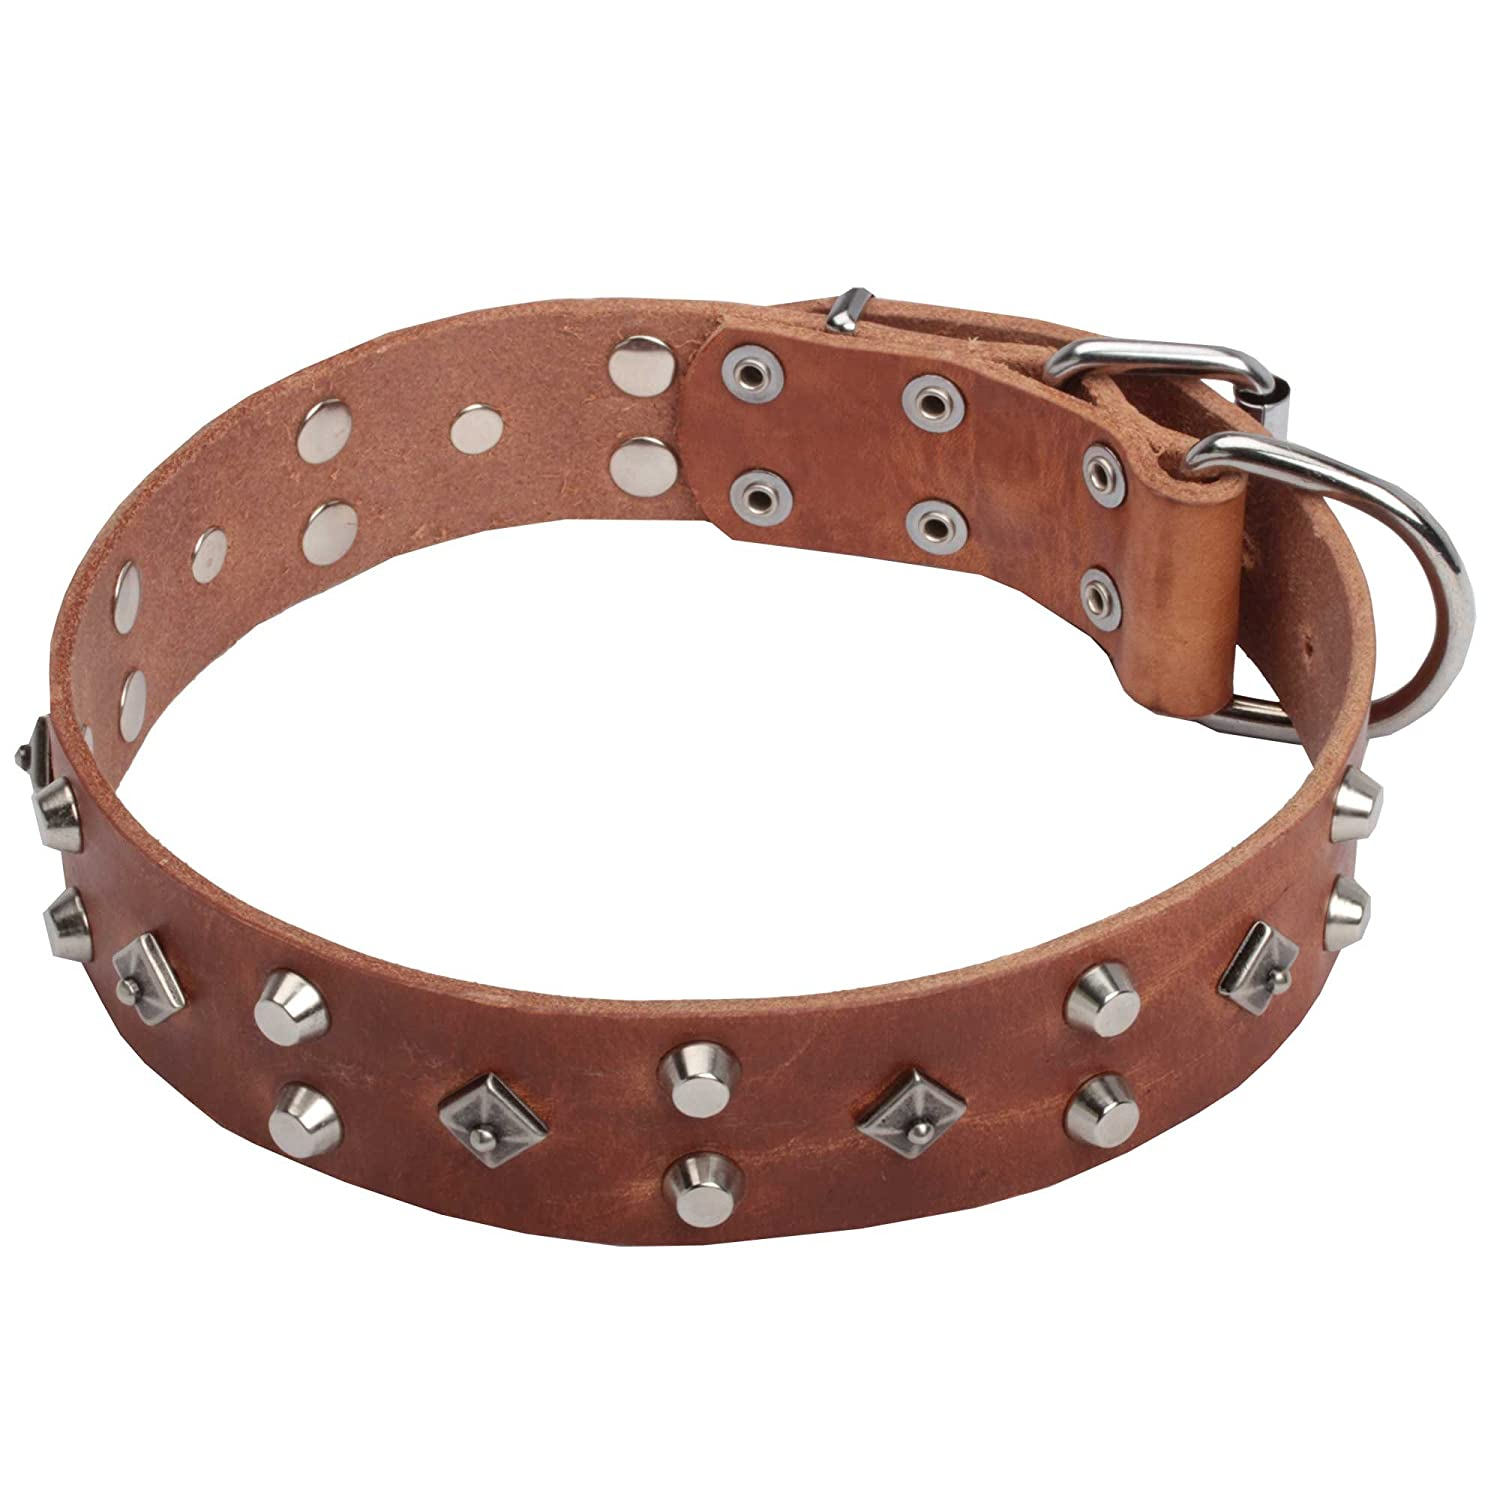 Tan fits for 22 inch dog's neck size Tan fits for 22 inch dog's neck size 22 inch Tan Leather Dog Collar 'Pyramid of Cheops' with Silver-like Decoration 1 1 2 inch (40 mm) wide